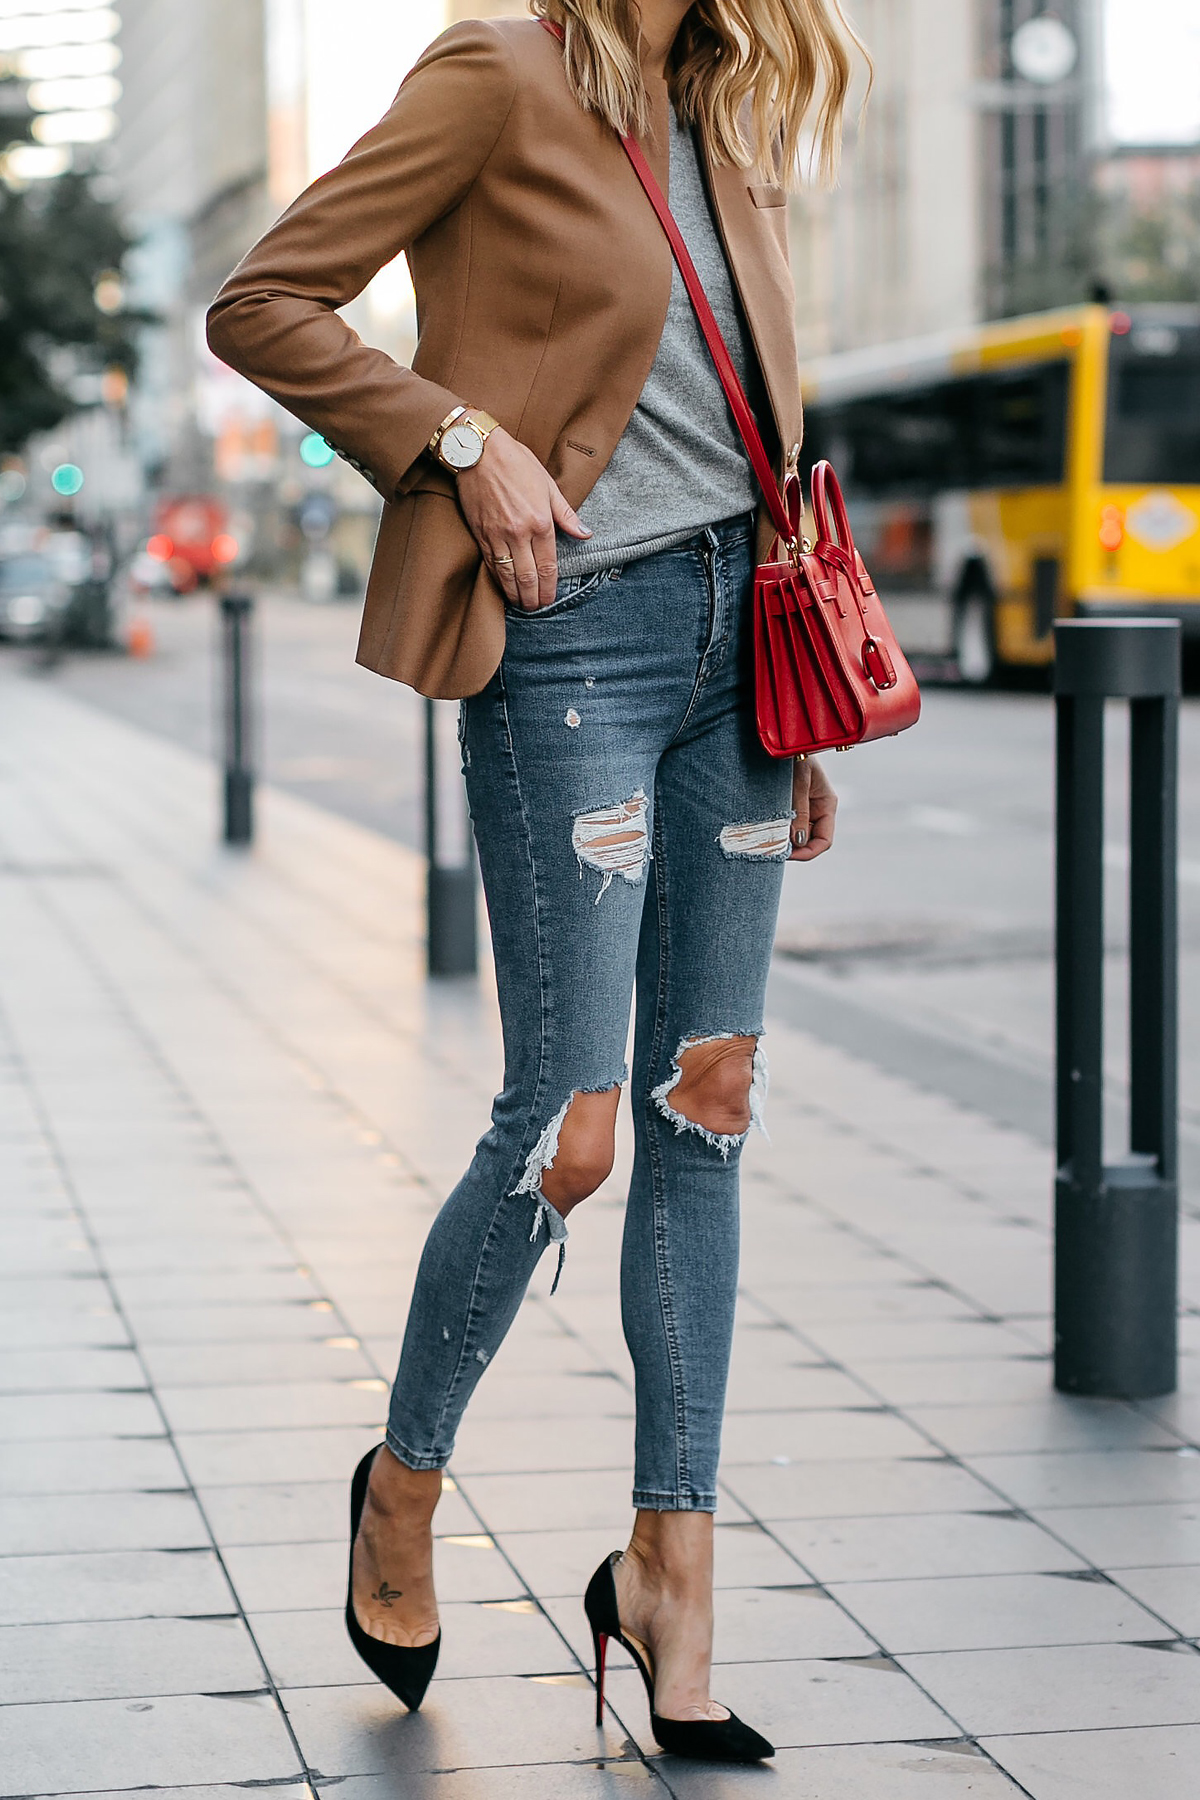 Jcrew Camel Blazer Grey Sweater Ripped Denim Jeans Black Pumps Saint Laurent Sac De Jour Nano Red Bag Fashion Jackson Dallas Blogger Fashion Blogger Street Style